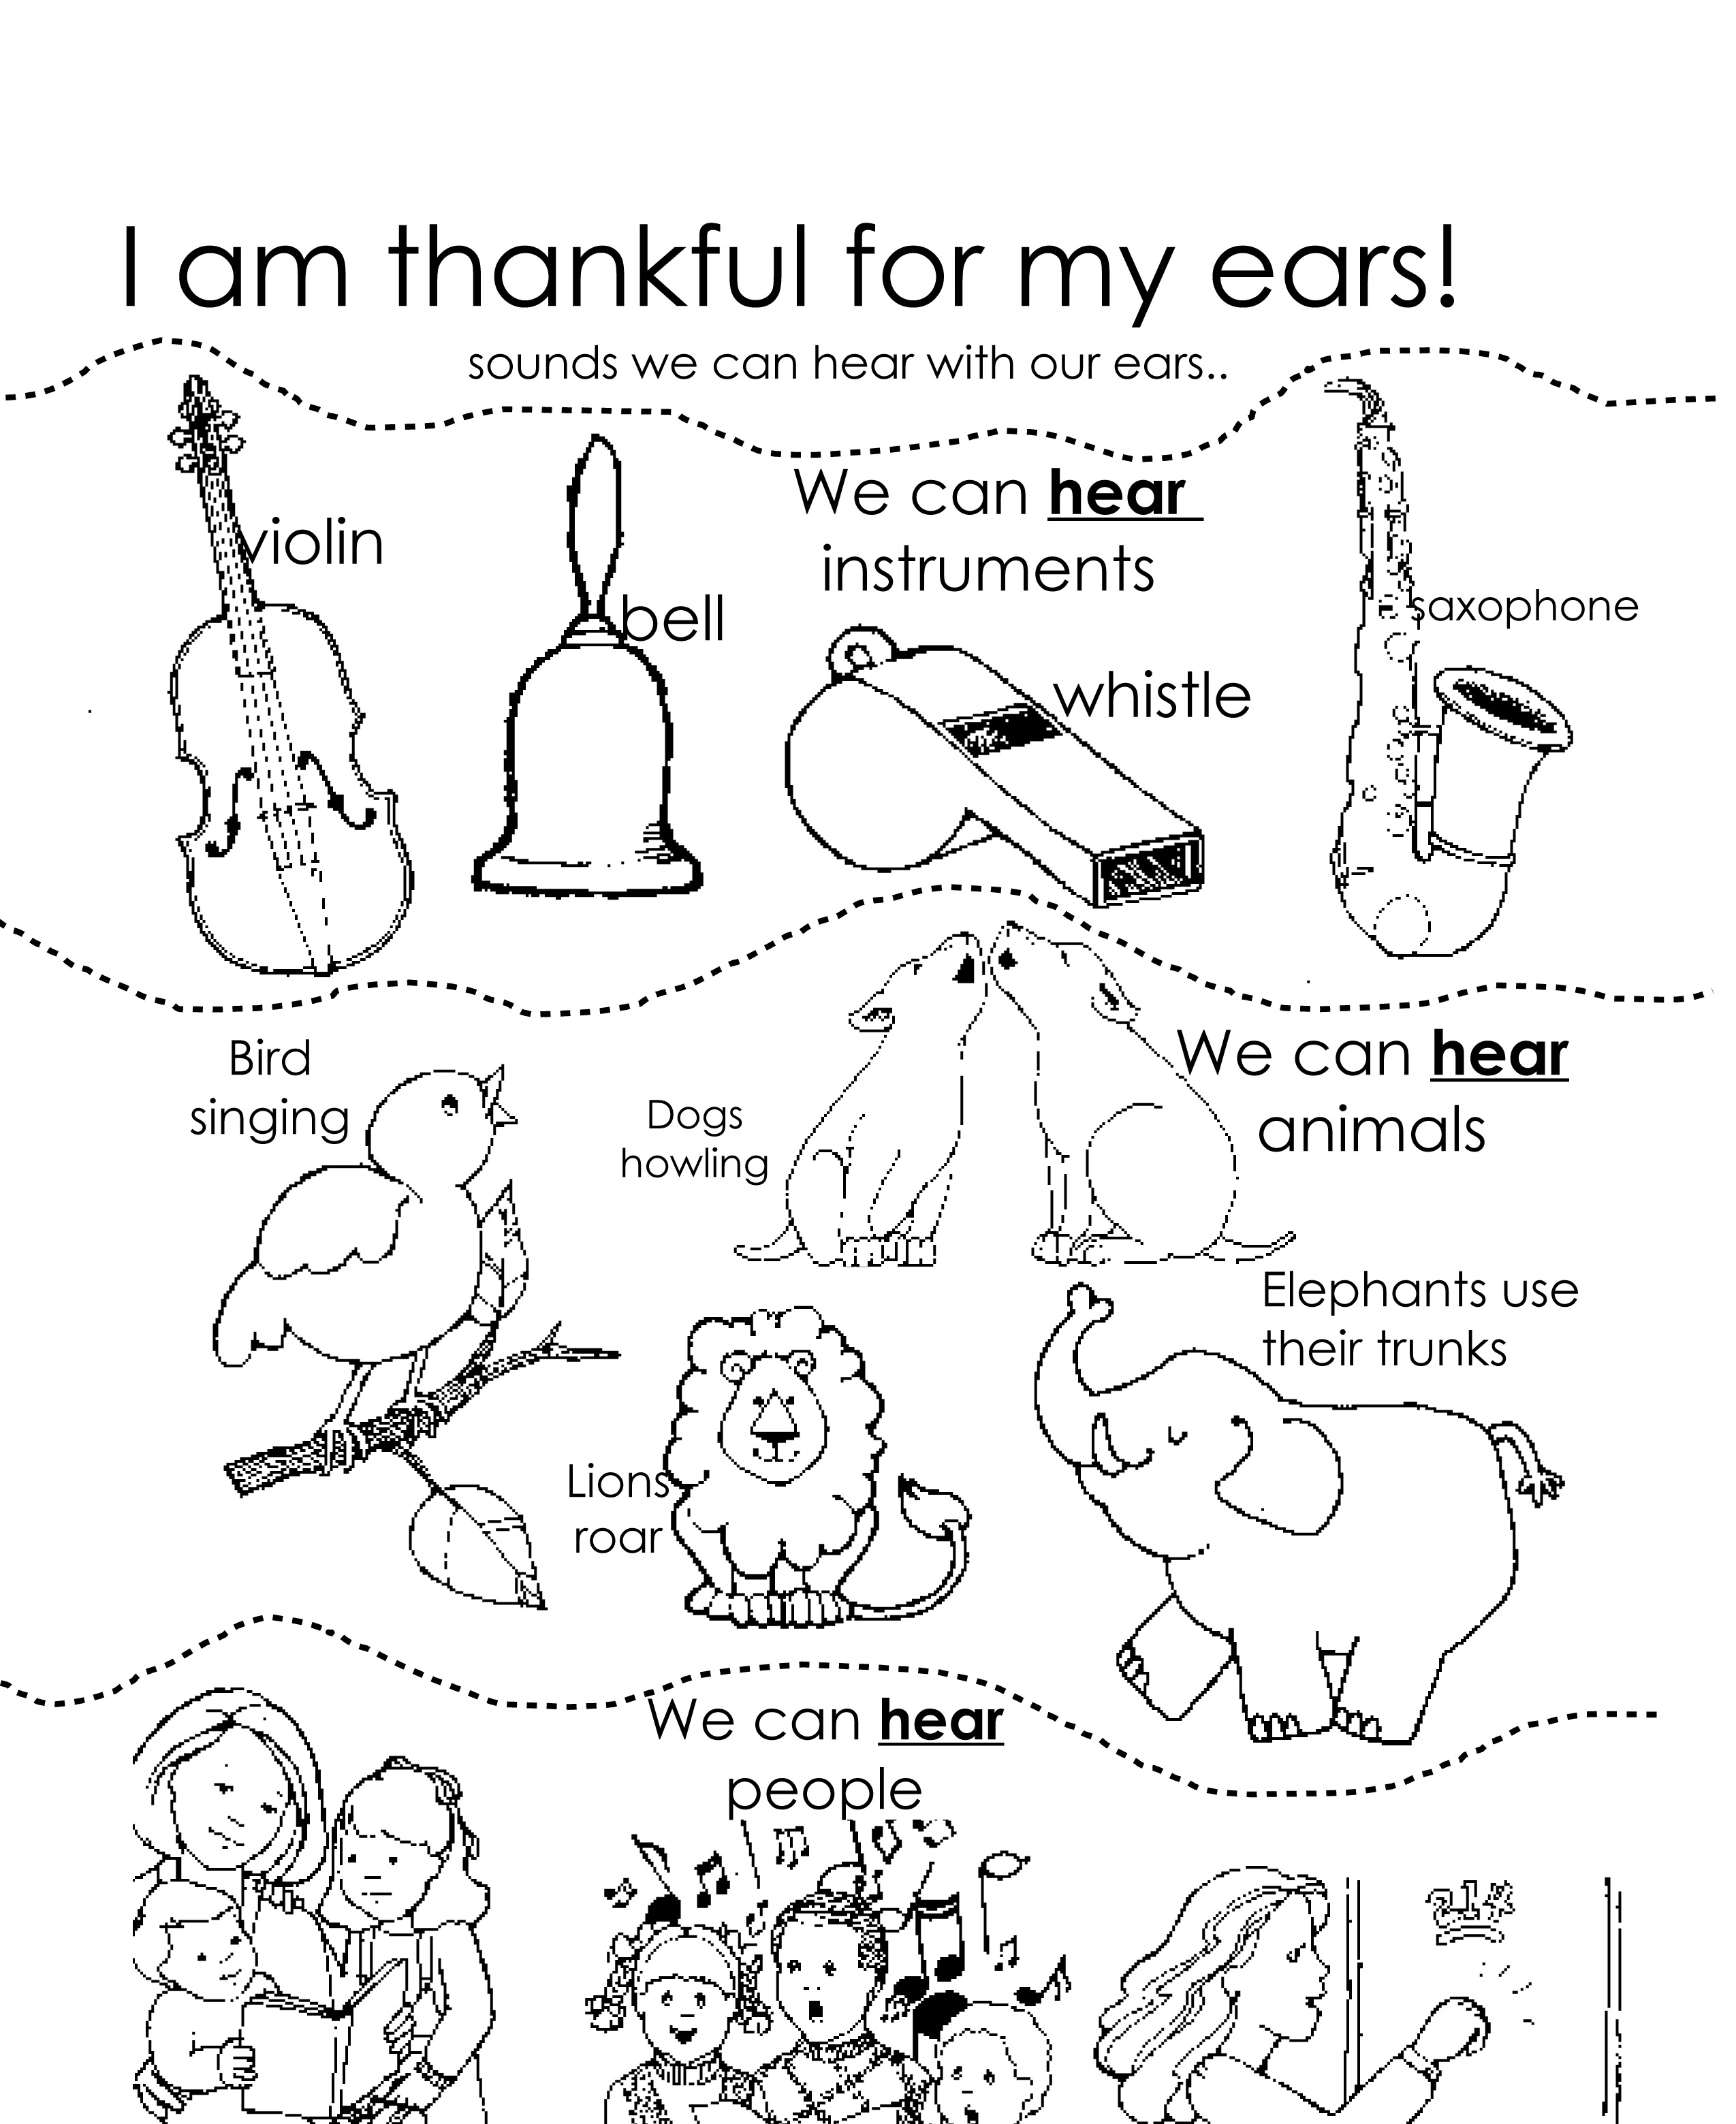 I Am Thankful For My Ears